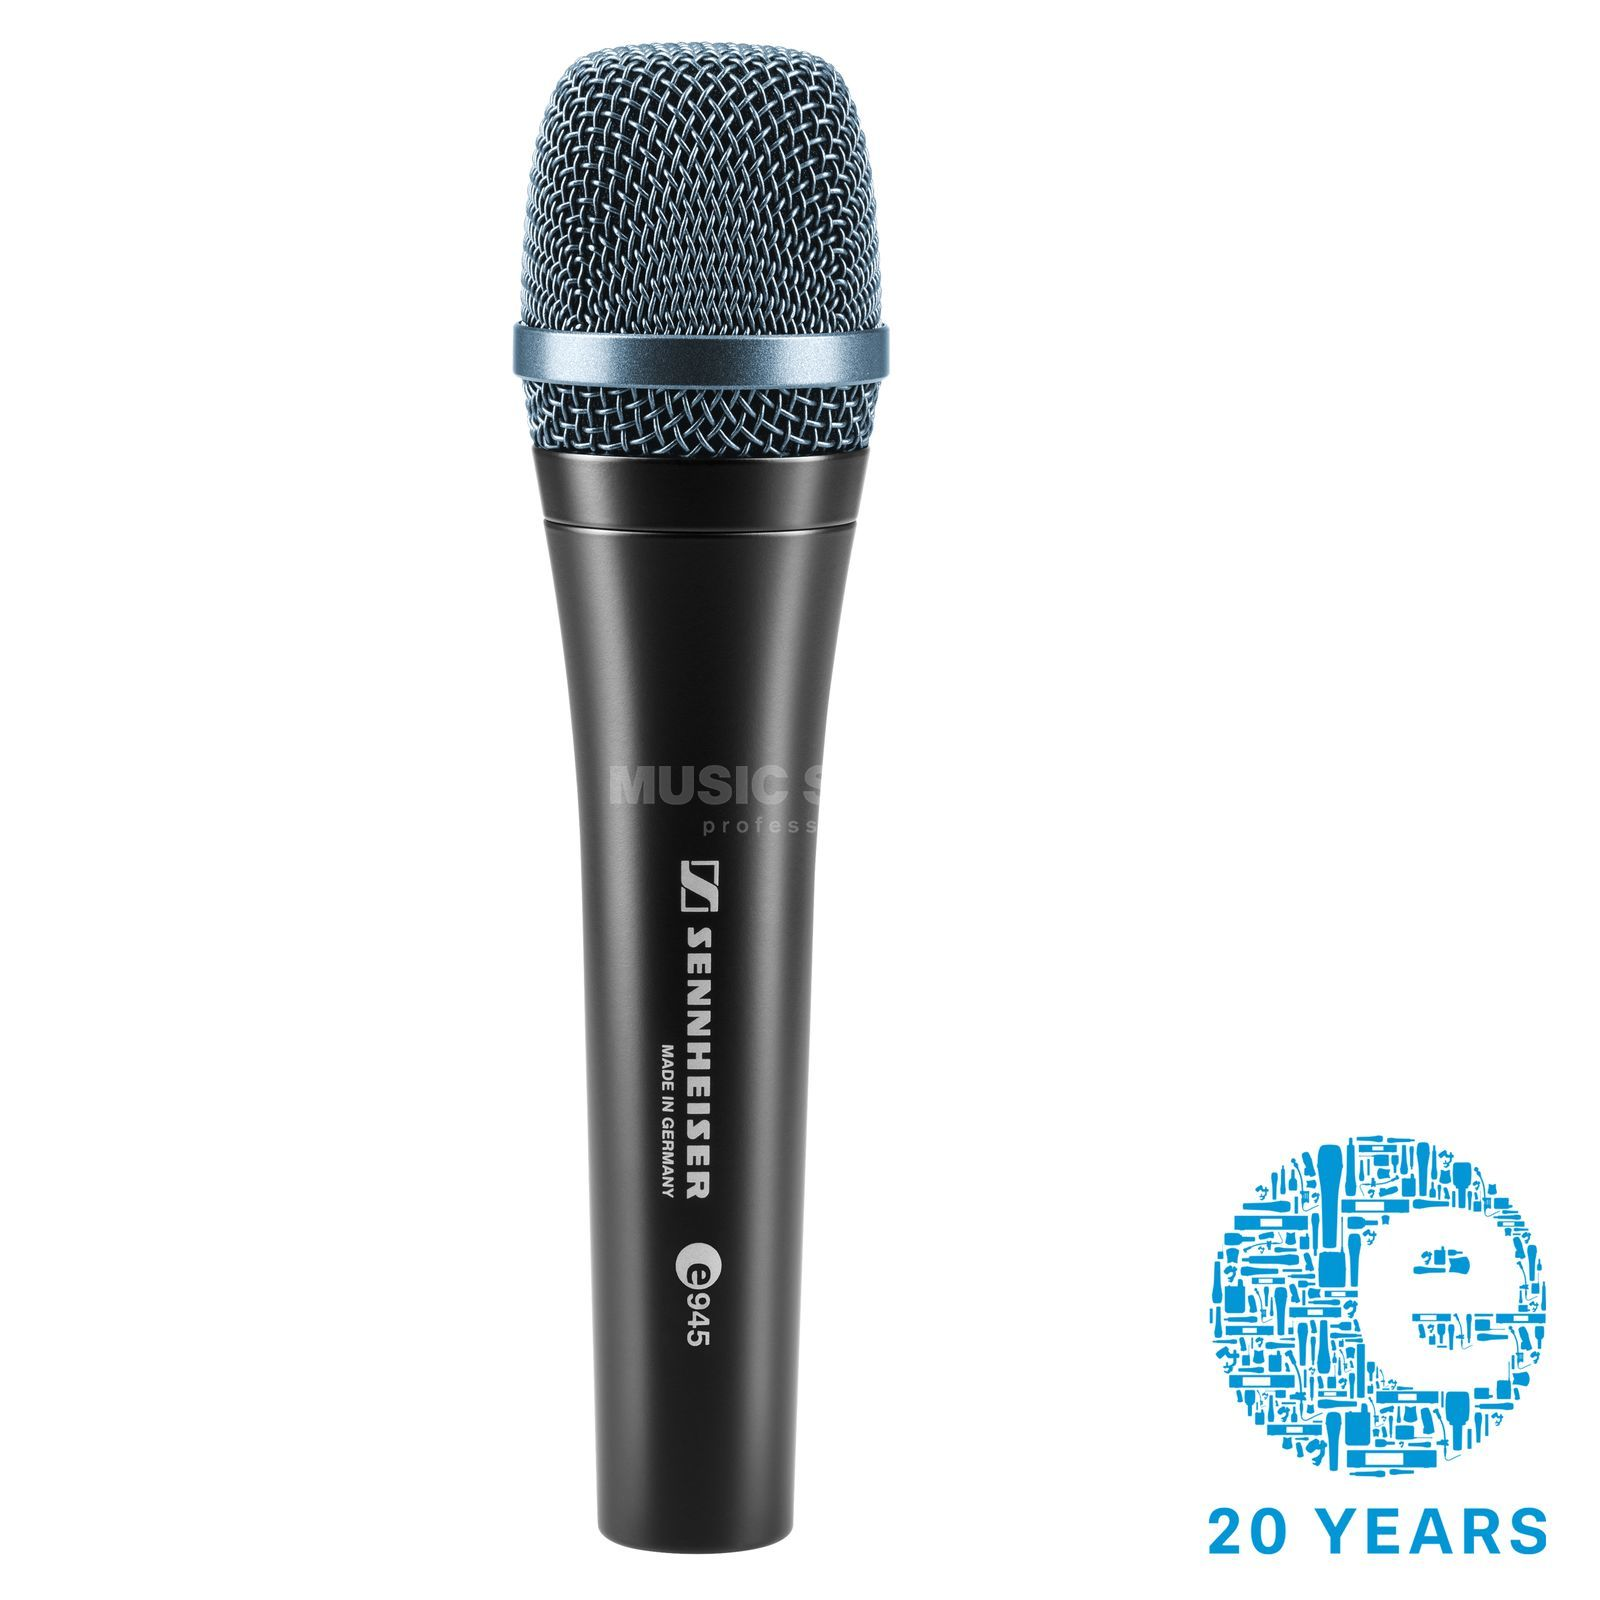 Sennheiser E 945 Dynamic Vocal Microphone    Product Image